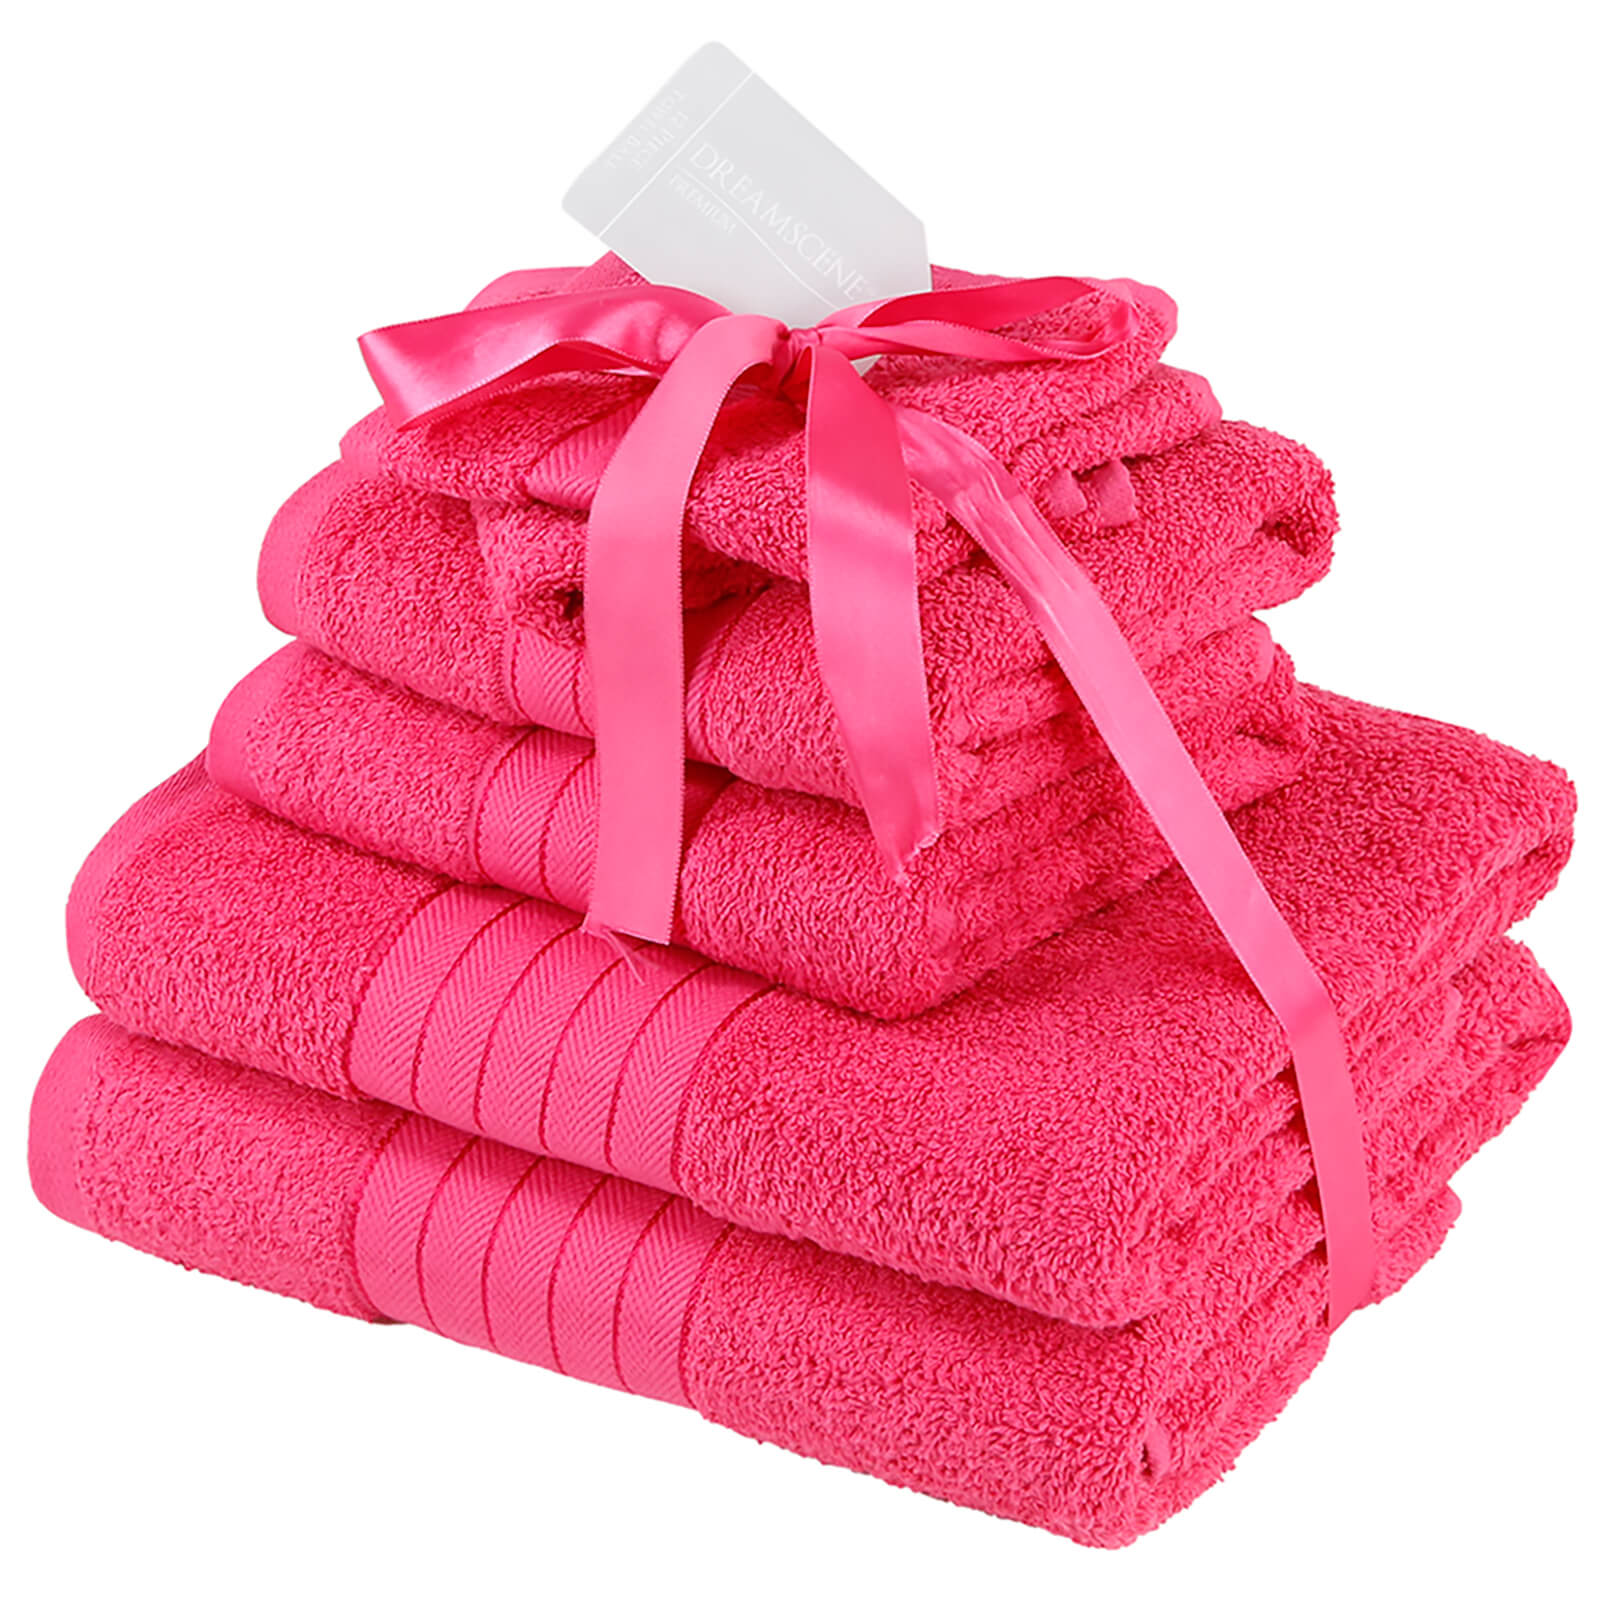 Highams 100% Cotton 6 Piece Towel Bale (500GSM) - Fuchsia